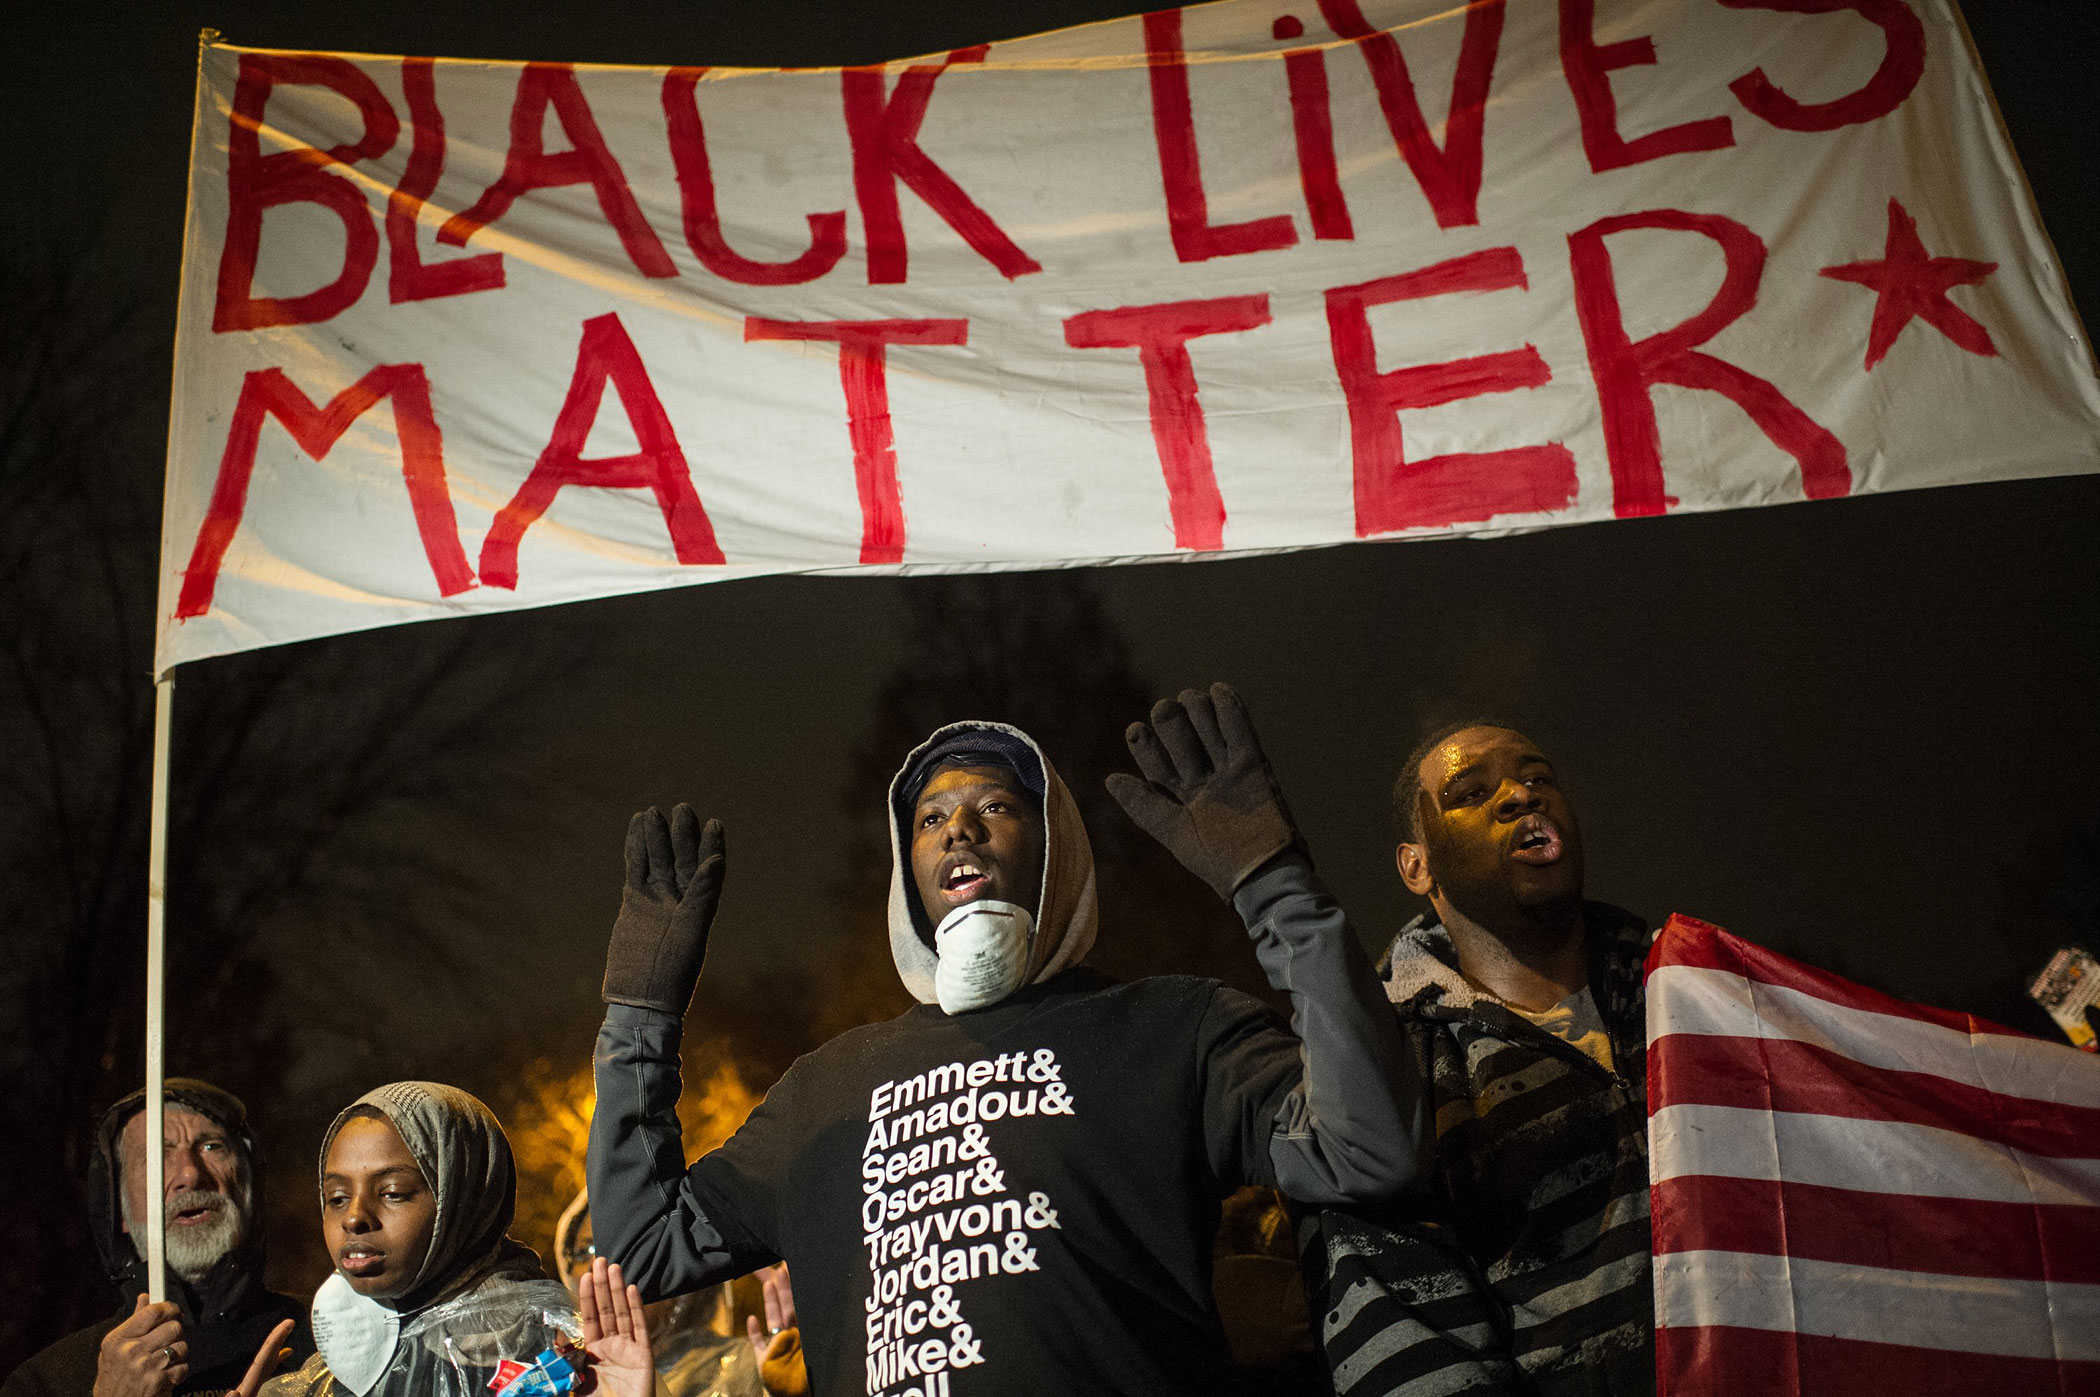 Protesters march shouting slogans through neighborhoods in St. Louis on Nov. 23, 2014